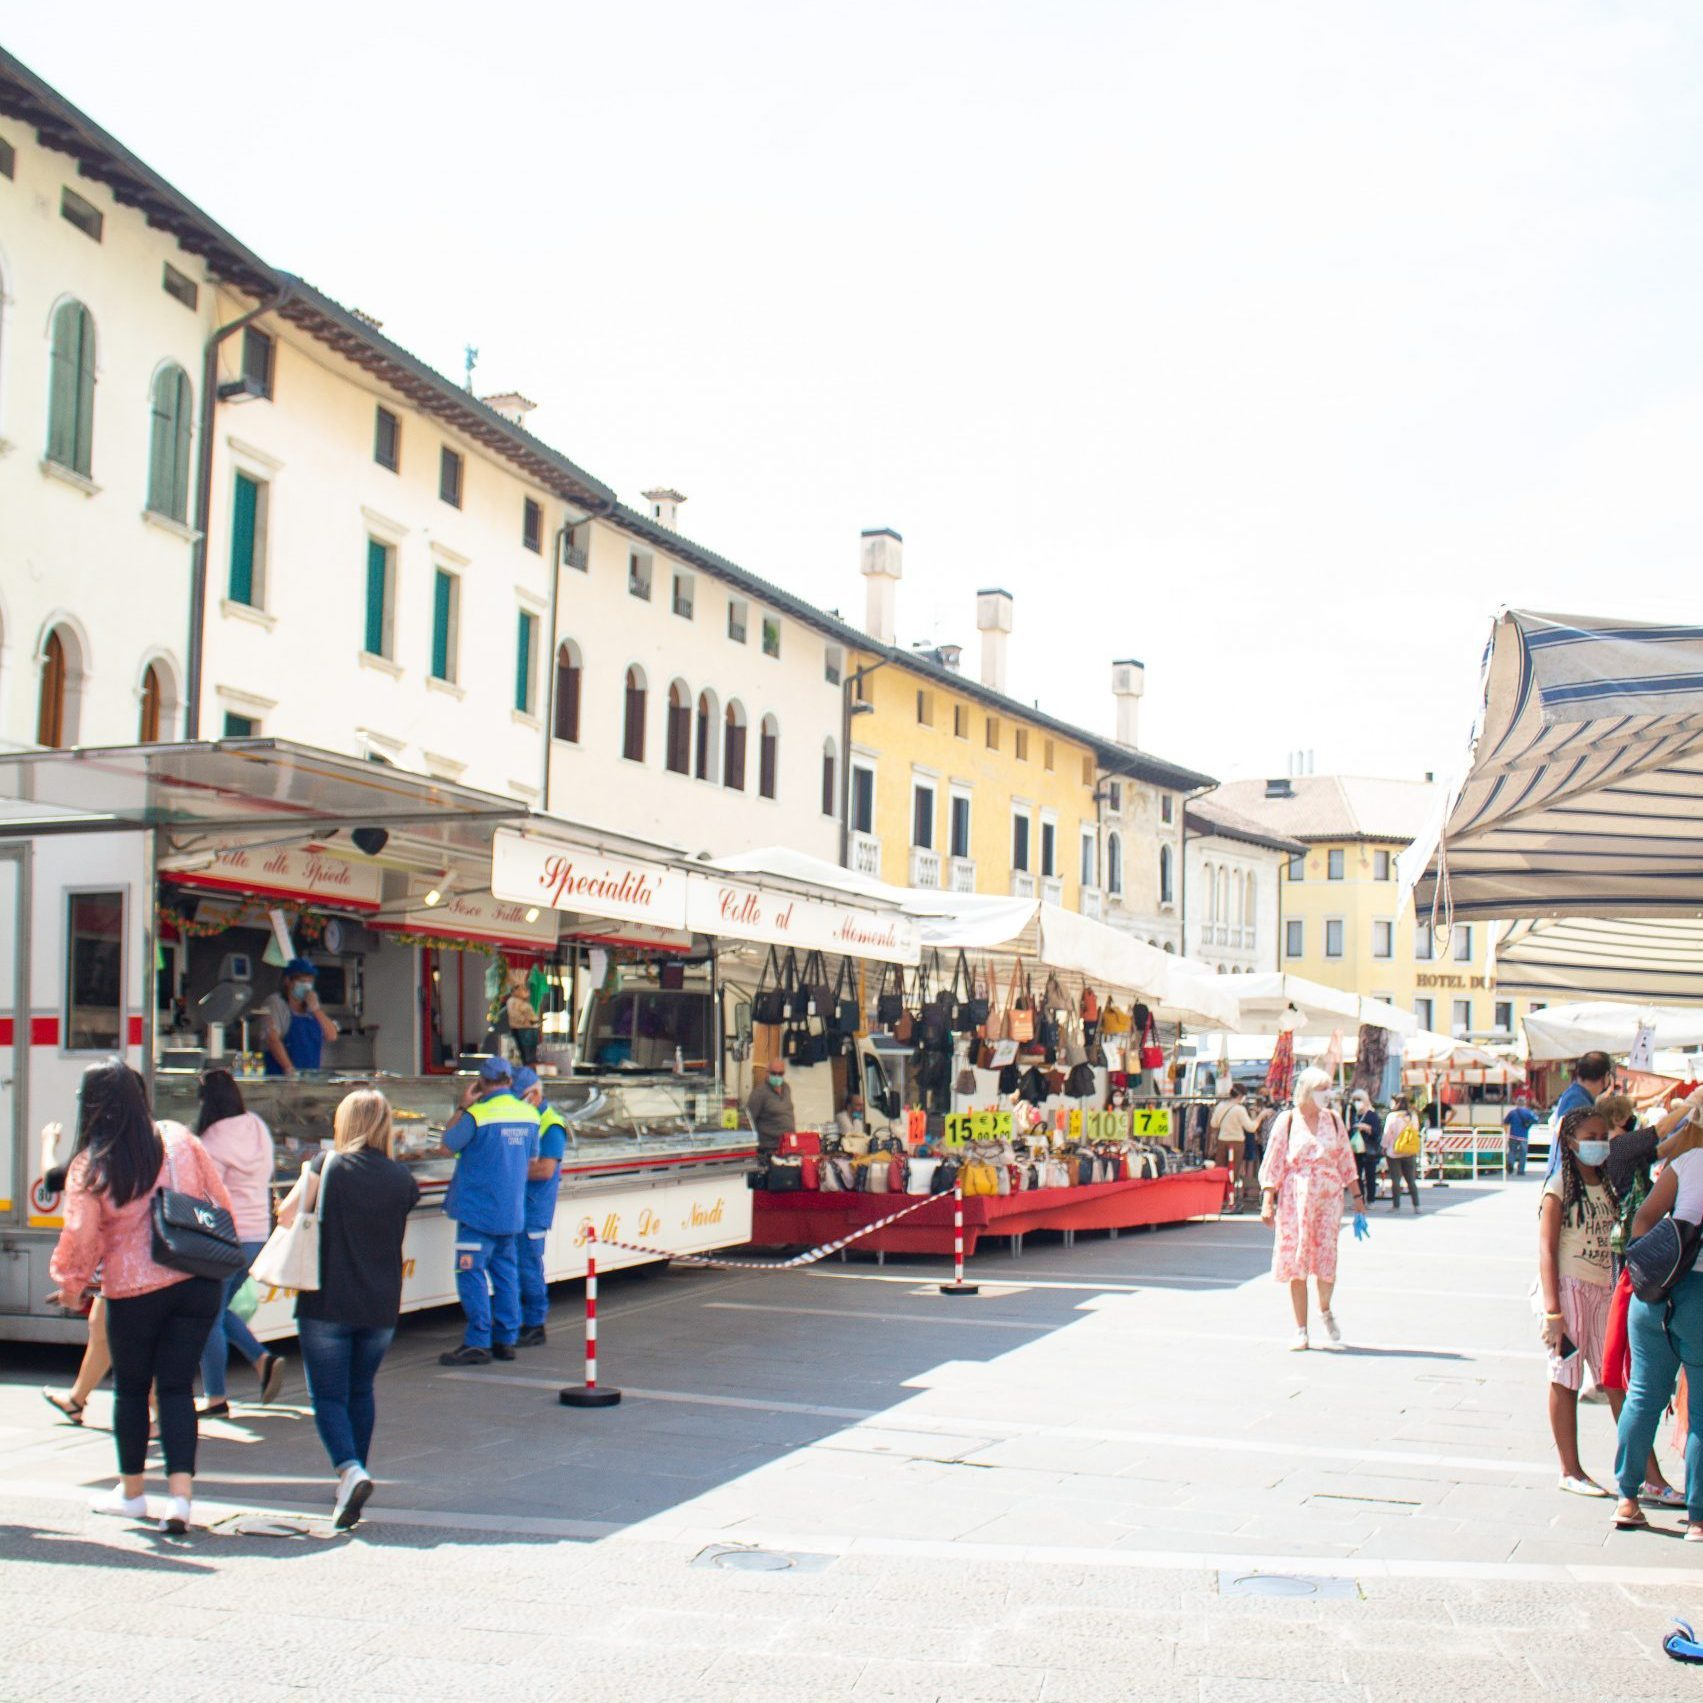 What you should know about traveling in Italy after the coronavirus lockdown